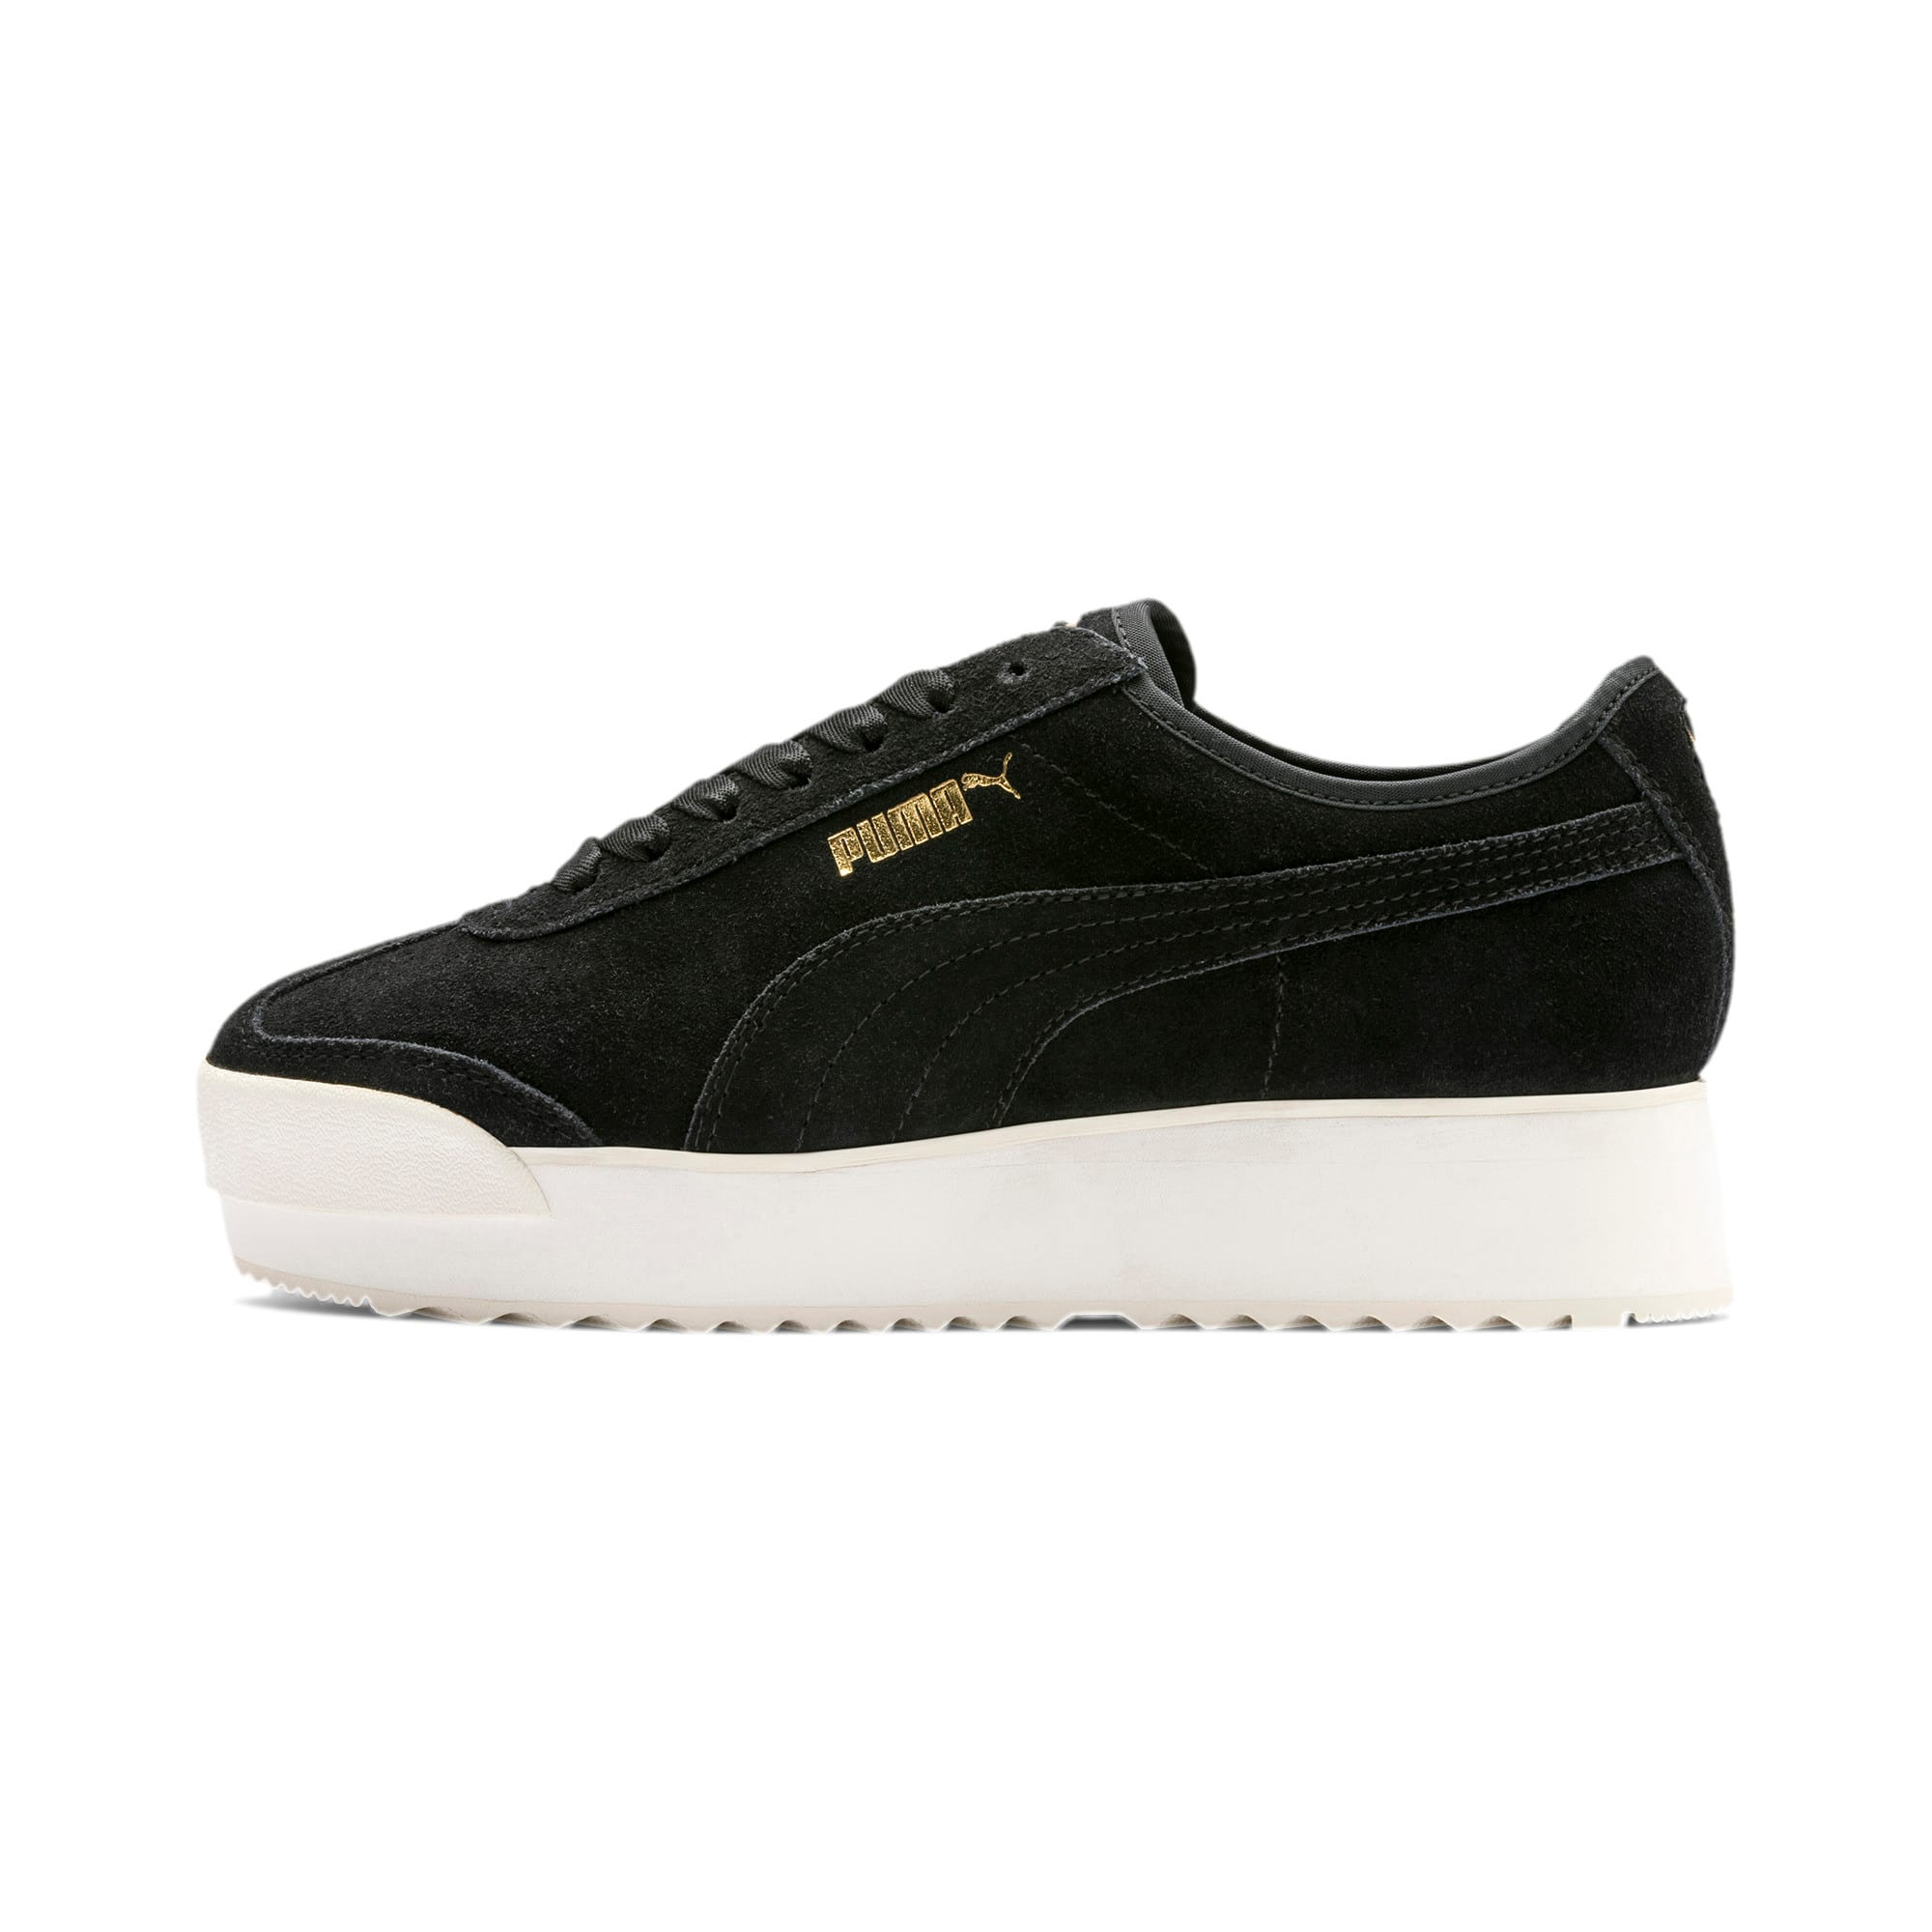 Thumbnail 1 of Roma Amor Suede Women's Trainers, Puma Black-Puma Team Gold, medium